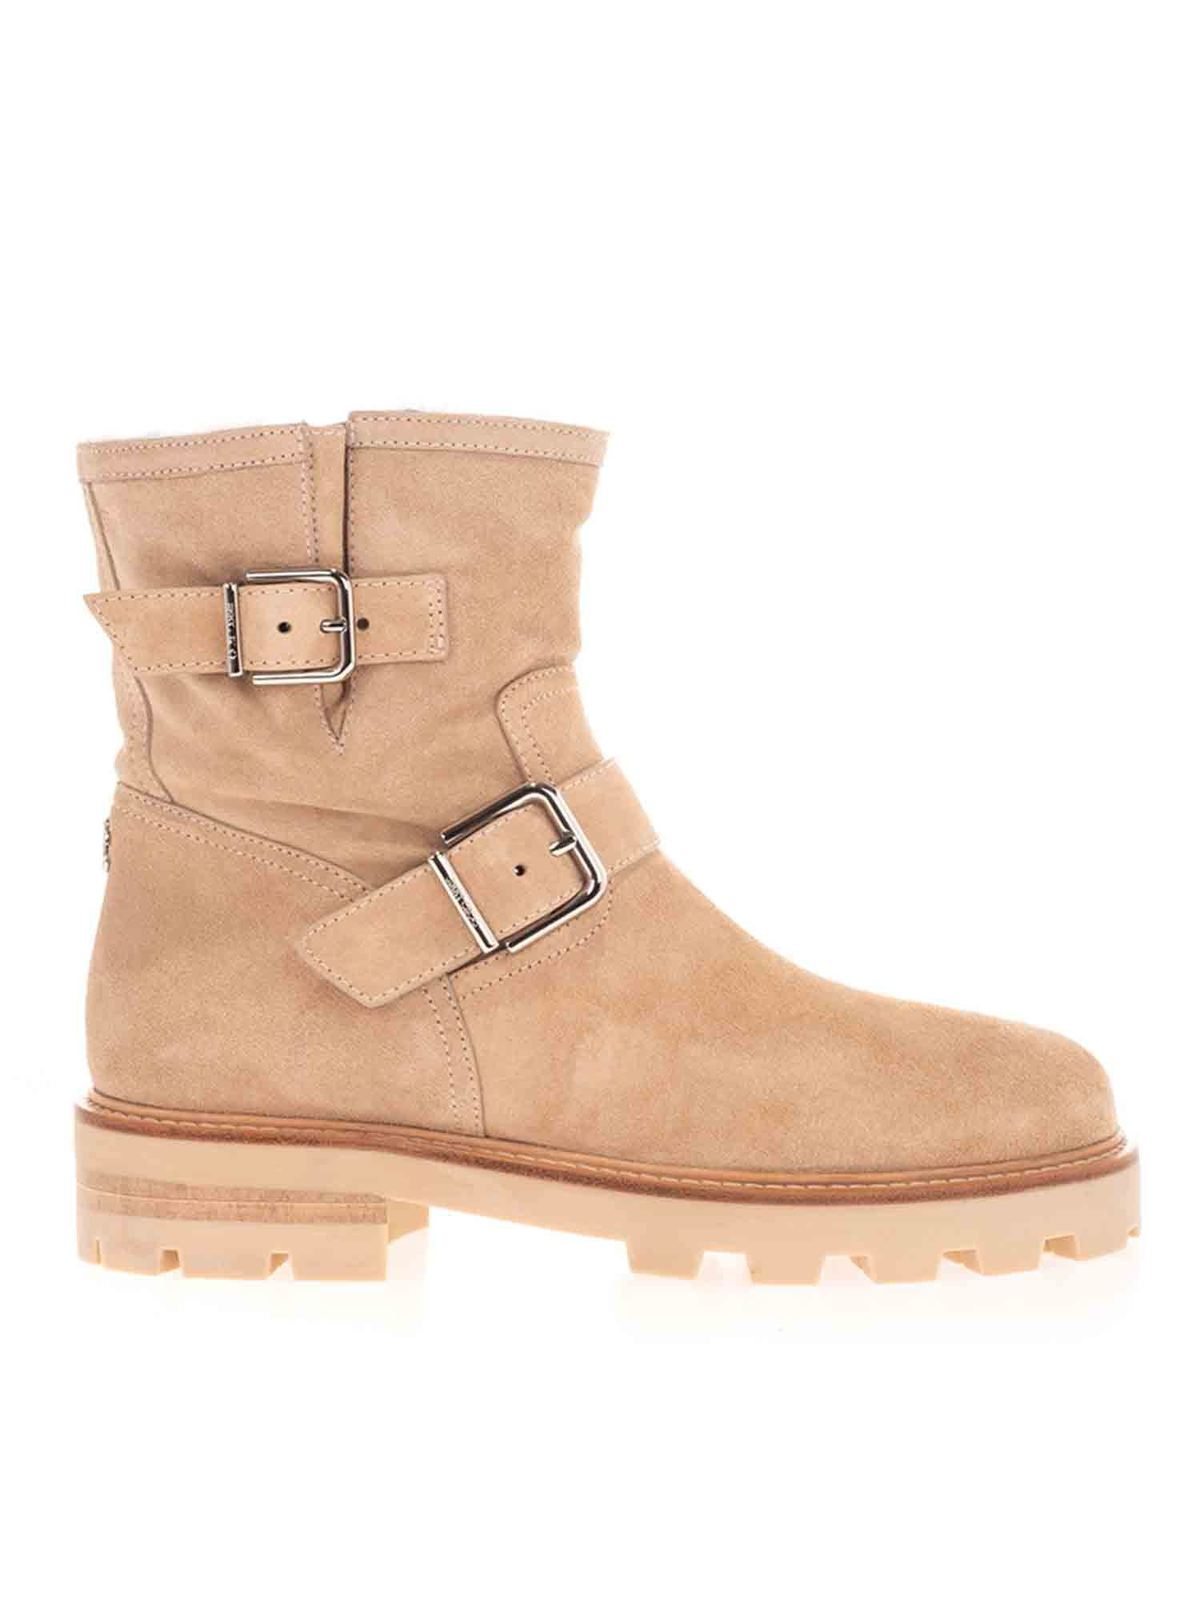 JIMMY CHOO YOUTH ANKLE BOOTS IN BEIGE